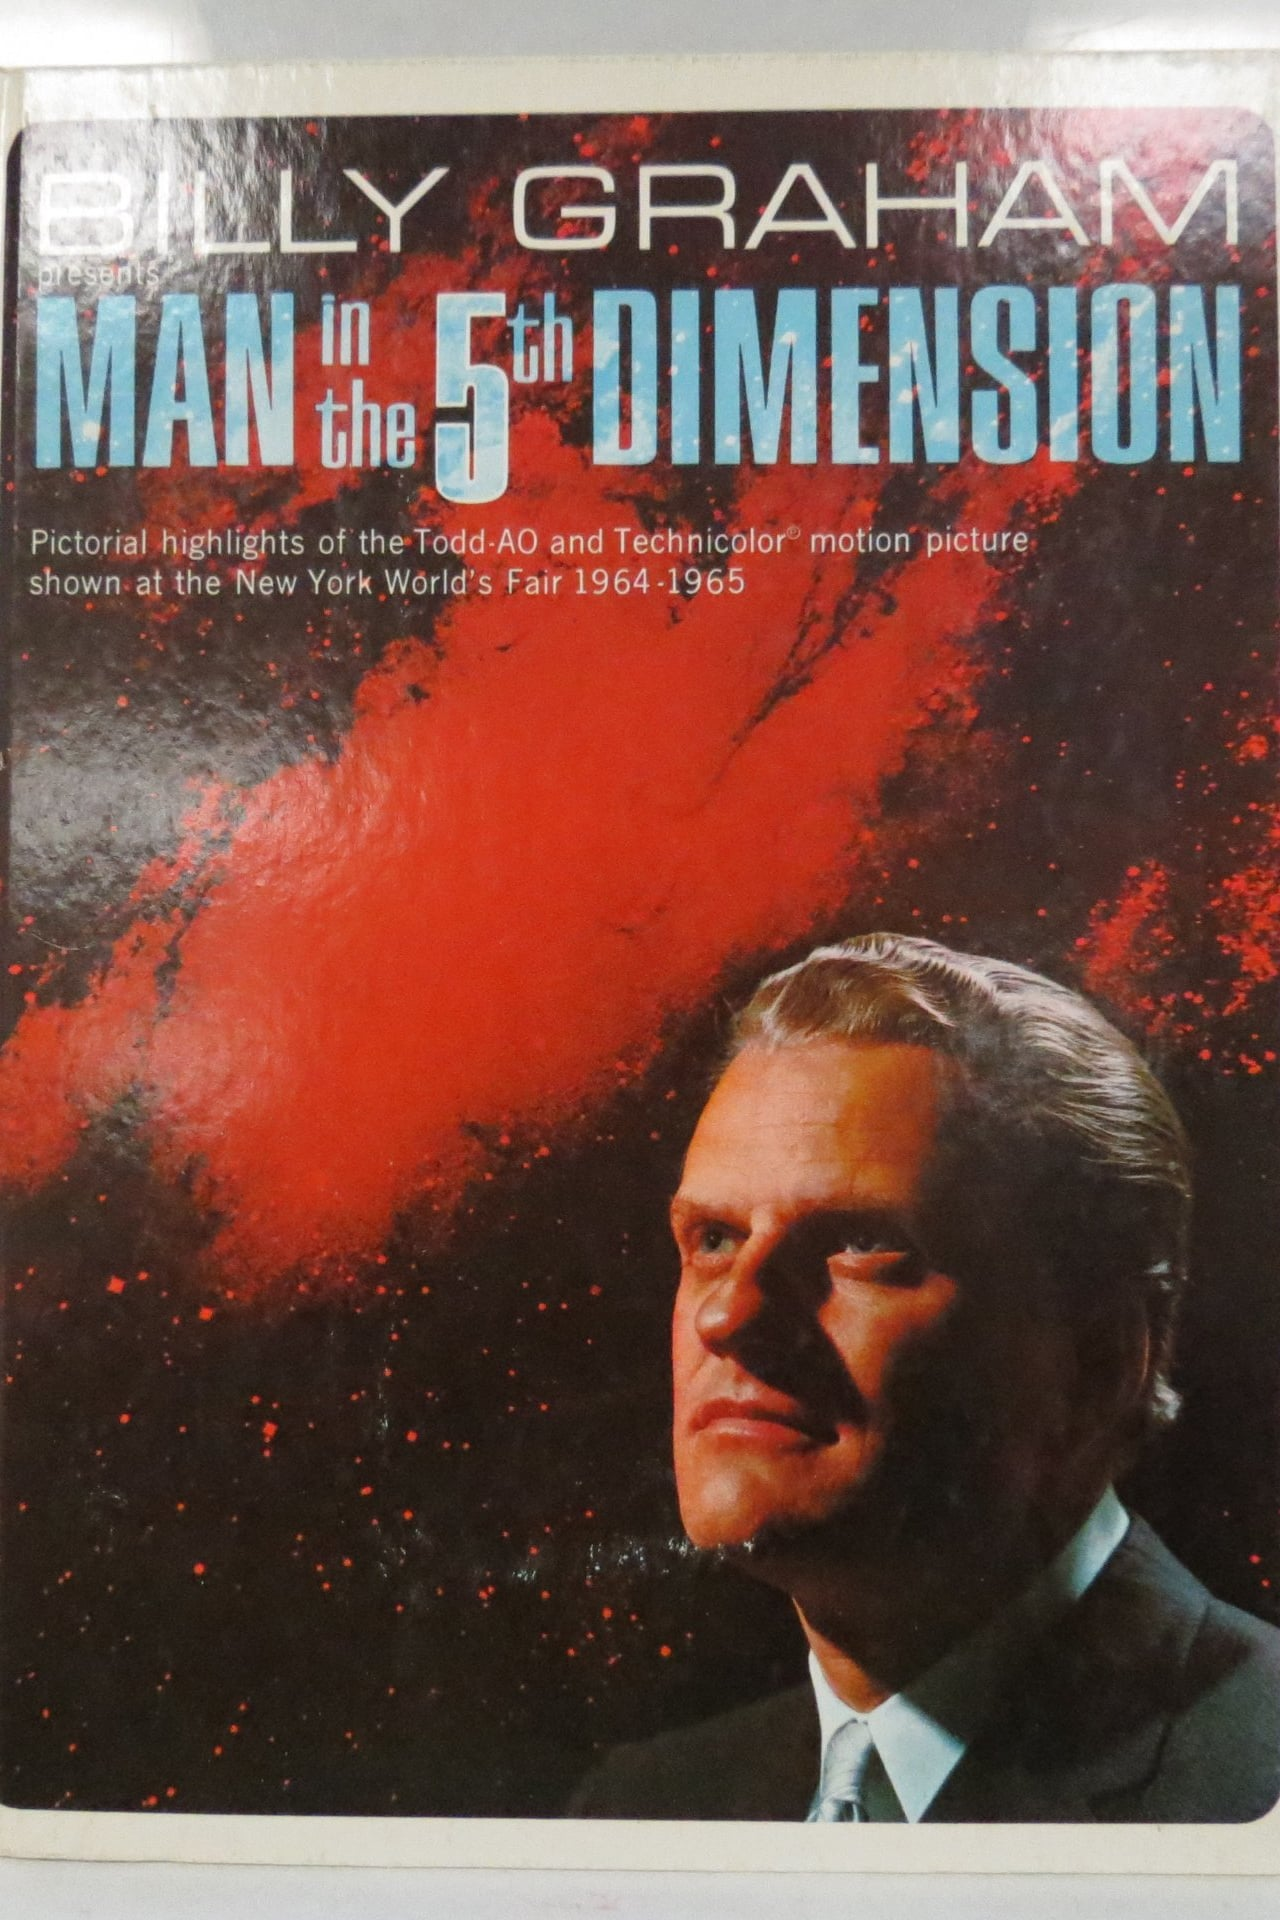 Man in the 5th Dimension (1964)